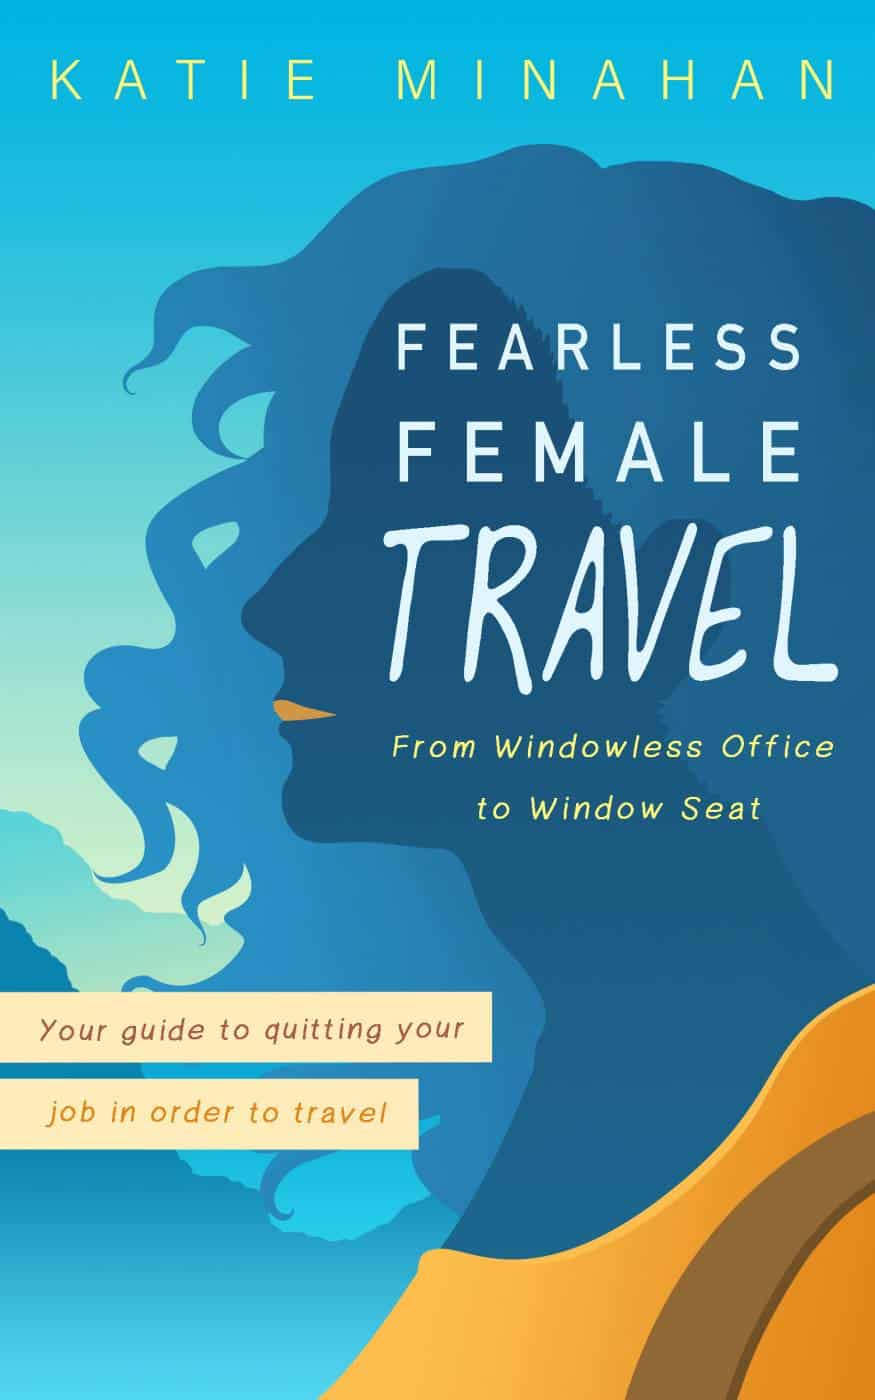 Fearless Female Travel